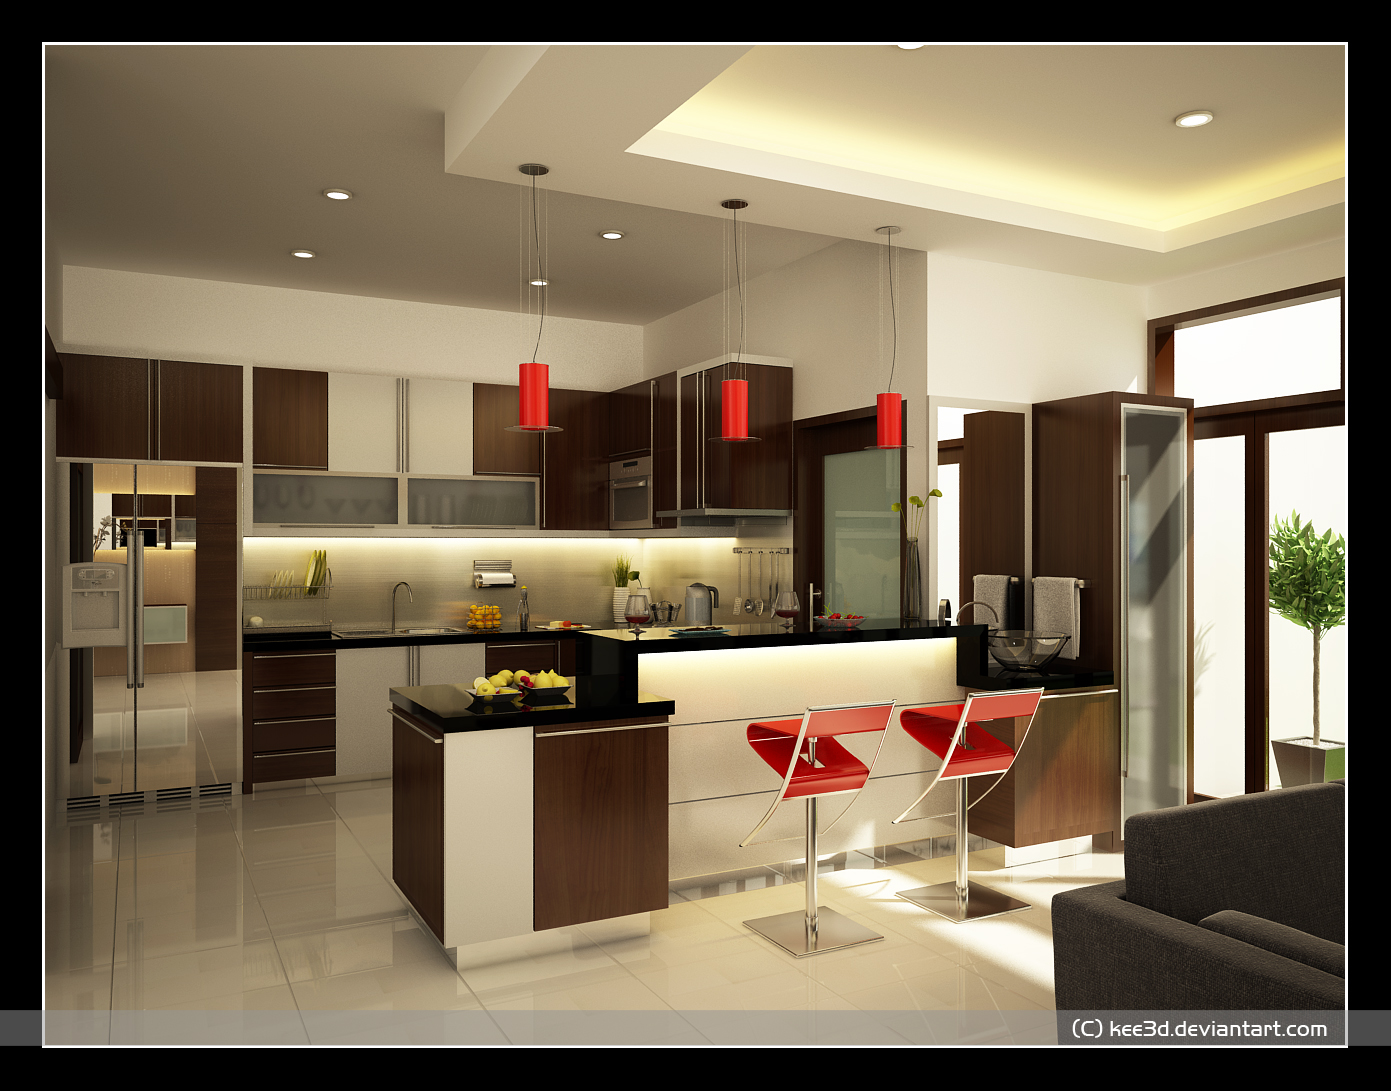 Kitchen design ideas for House kitchen design